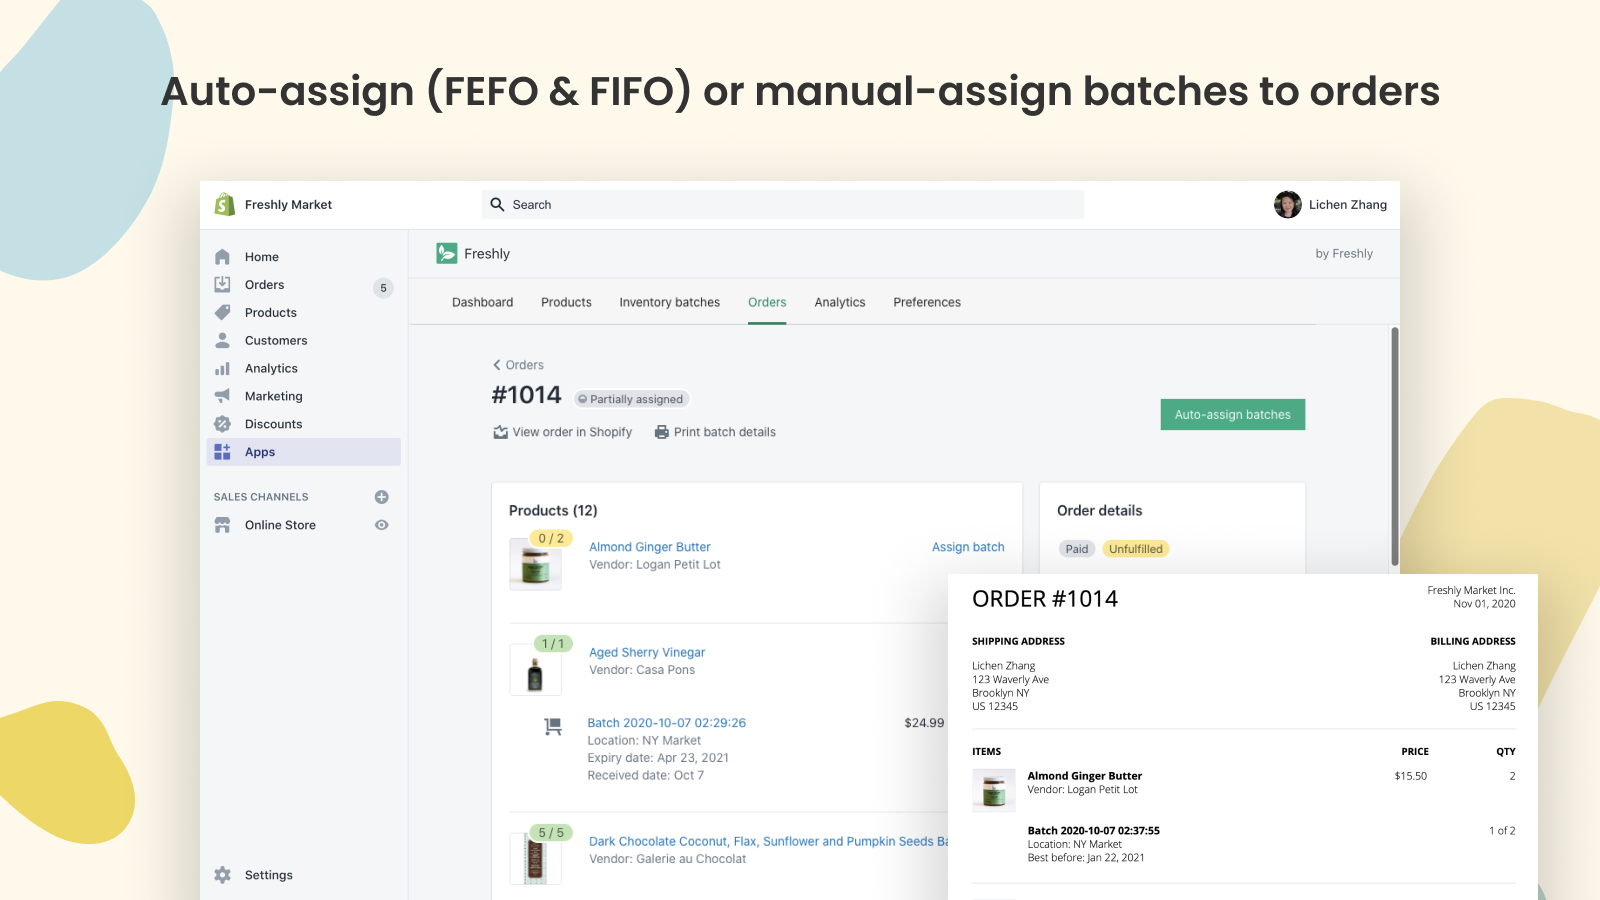 Auto-assign (FEFO or FIFO) or manual-assign batches to orders